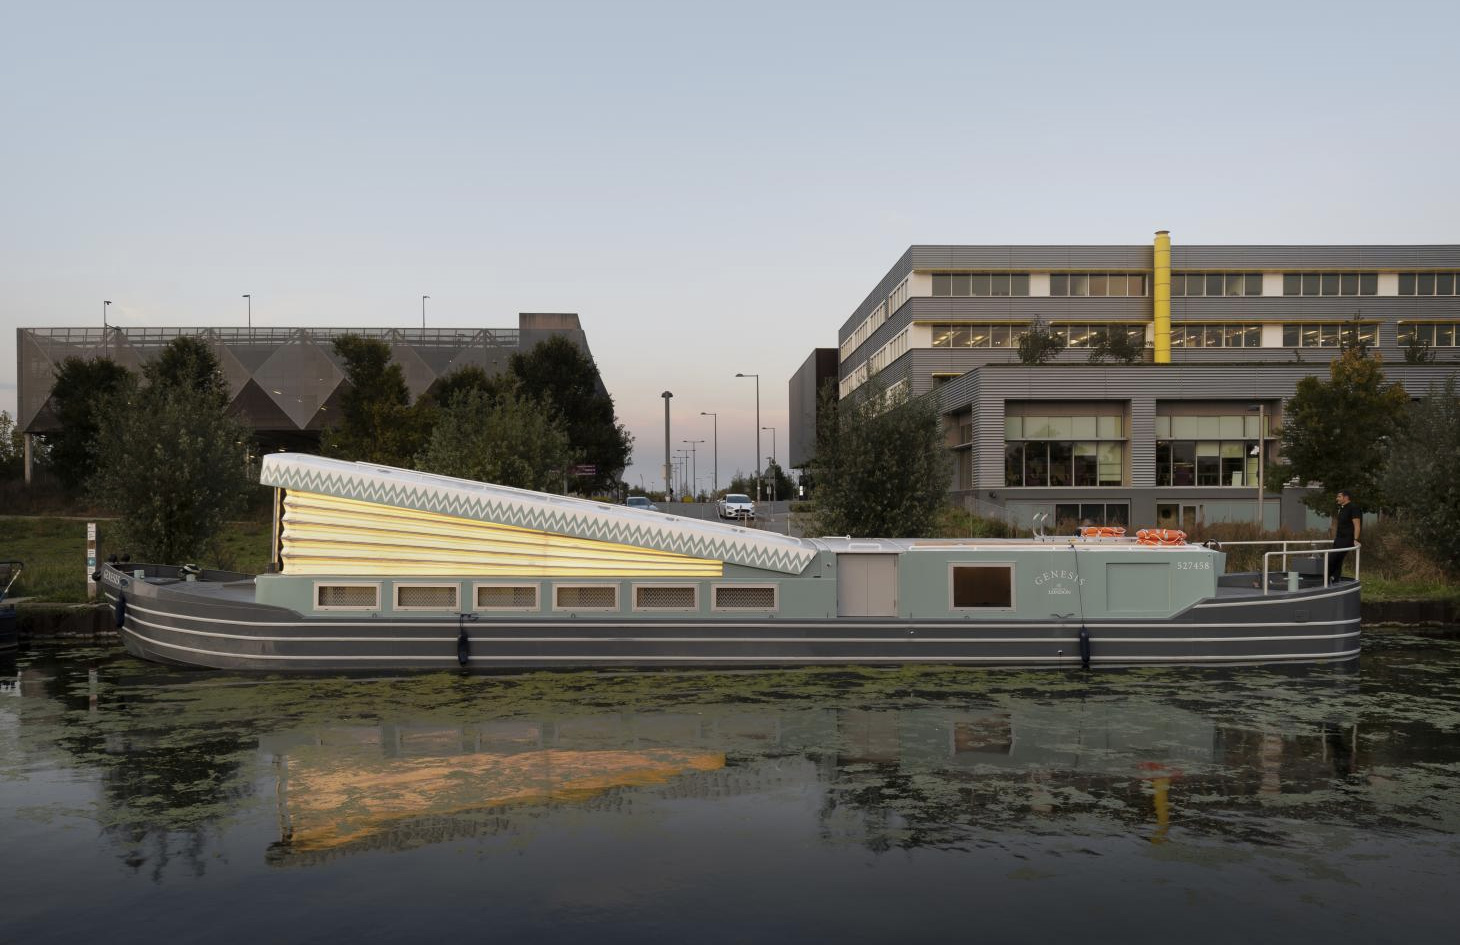 Genesis floating church in Hackney Wick is designed by A floating church has moored in East London's Hackney Wick